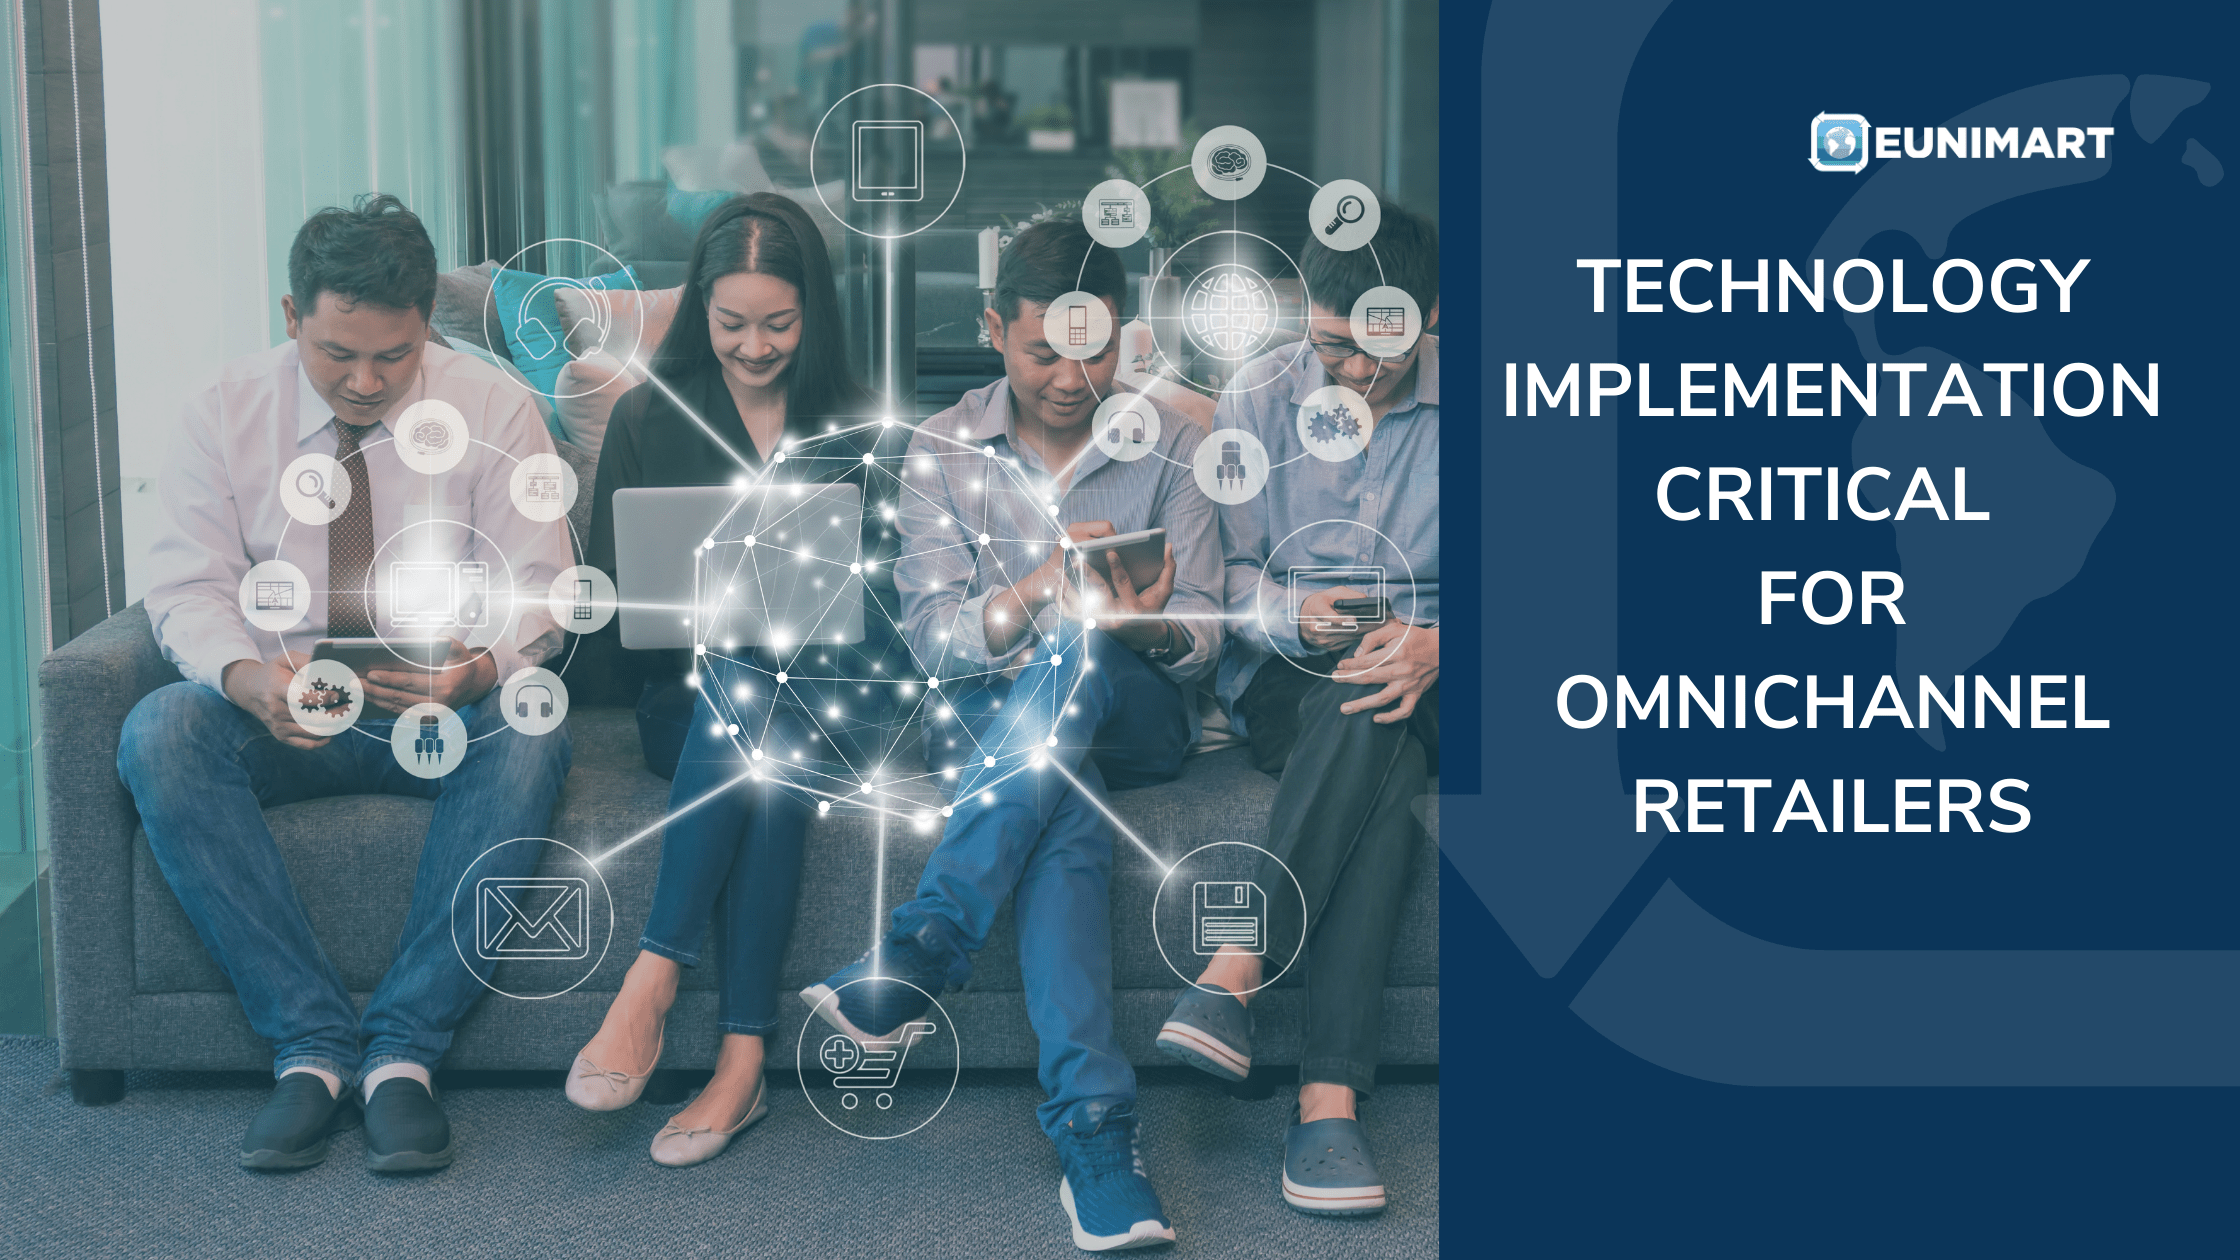 TECHNOLOGY IMPLEMENTATION CRITICAL FOR OMNICHANNEL RETAILERS